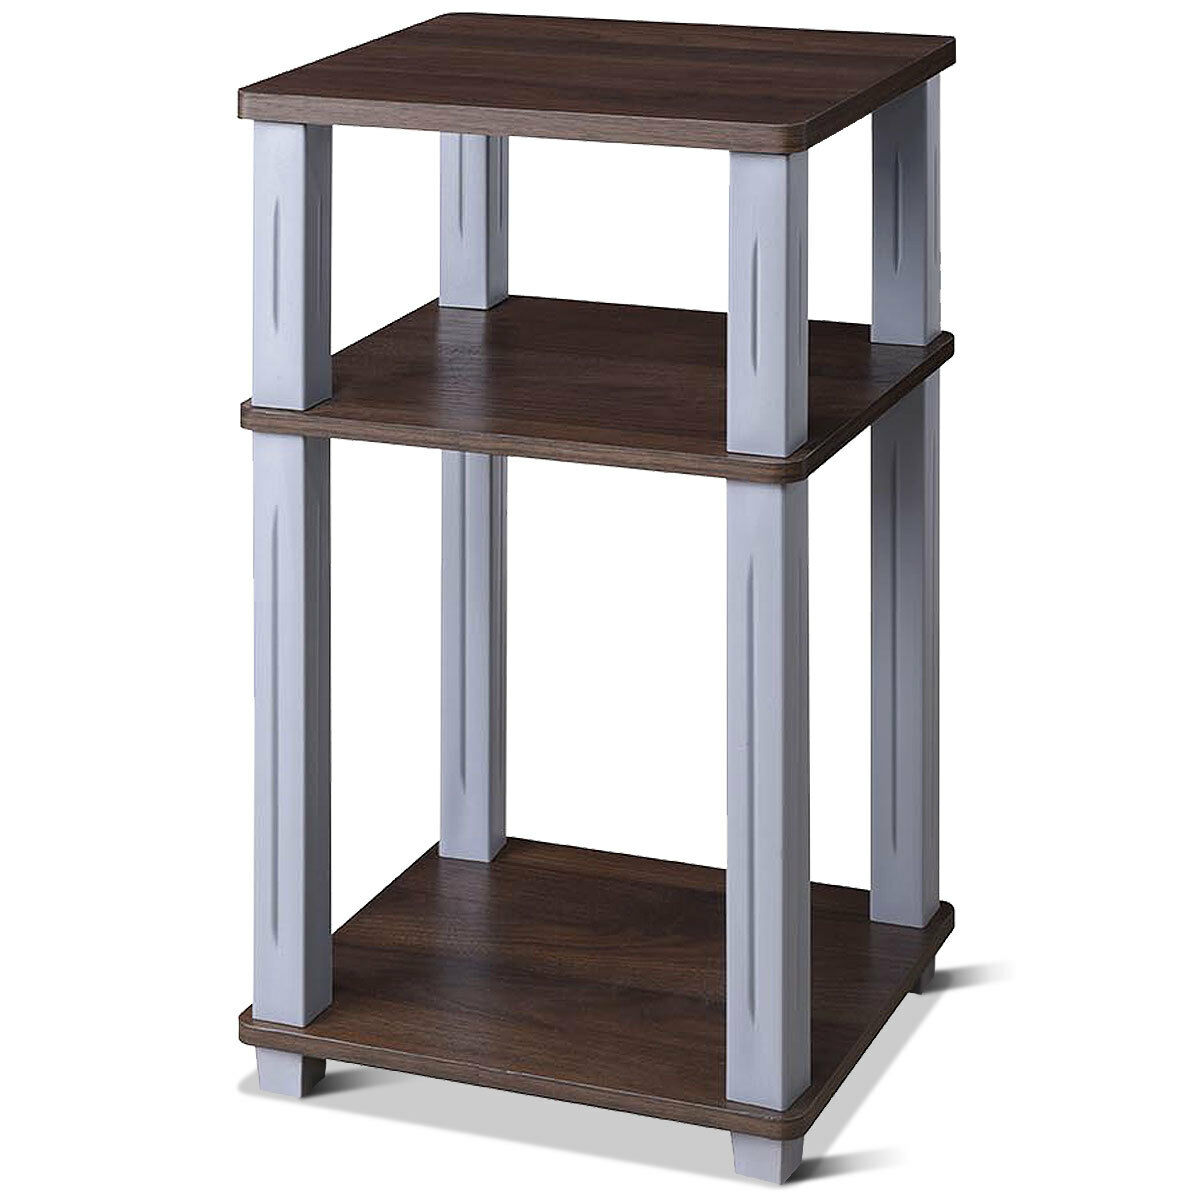 Costway 3-Tier Square Storage Shelves End Table Night Stand Display Living Room Walnut